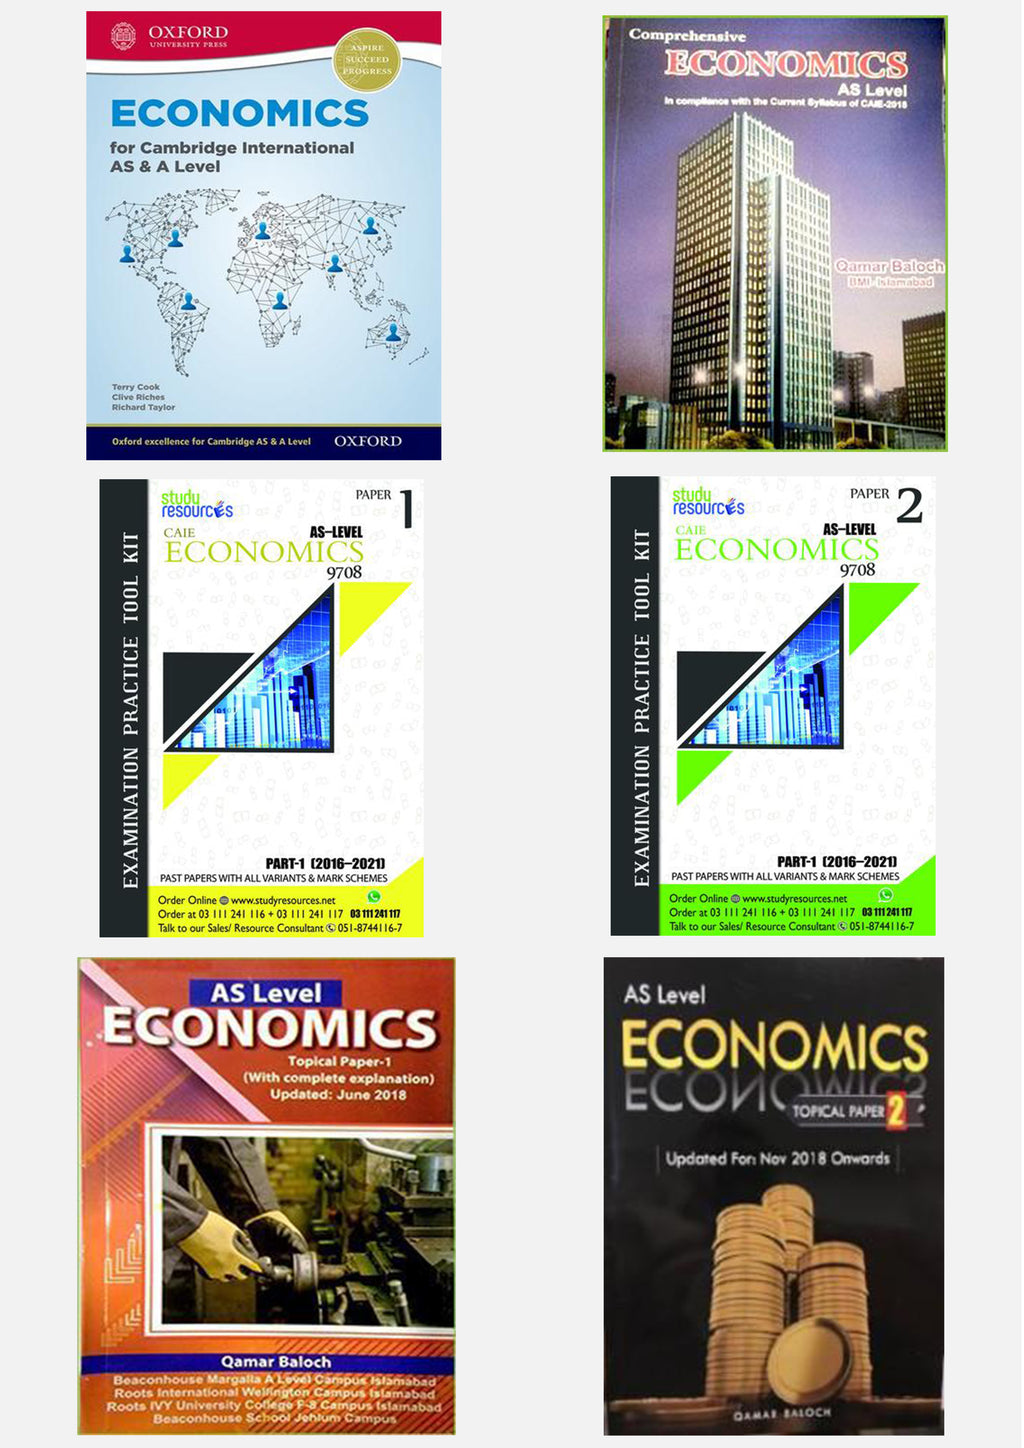 Cambridge AS Economics (9708) Exam Success Resource Bundle (CUSTOMIZABLE)